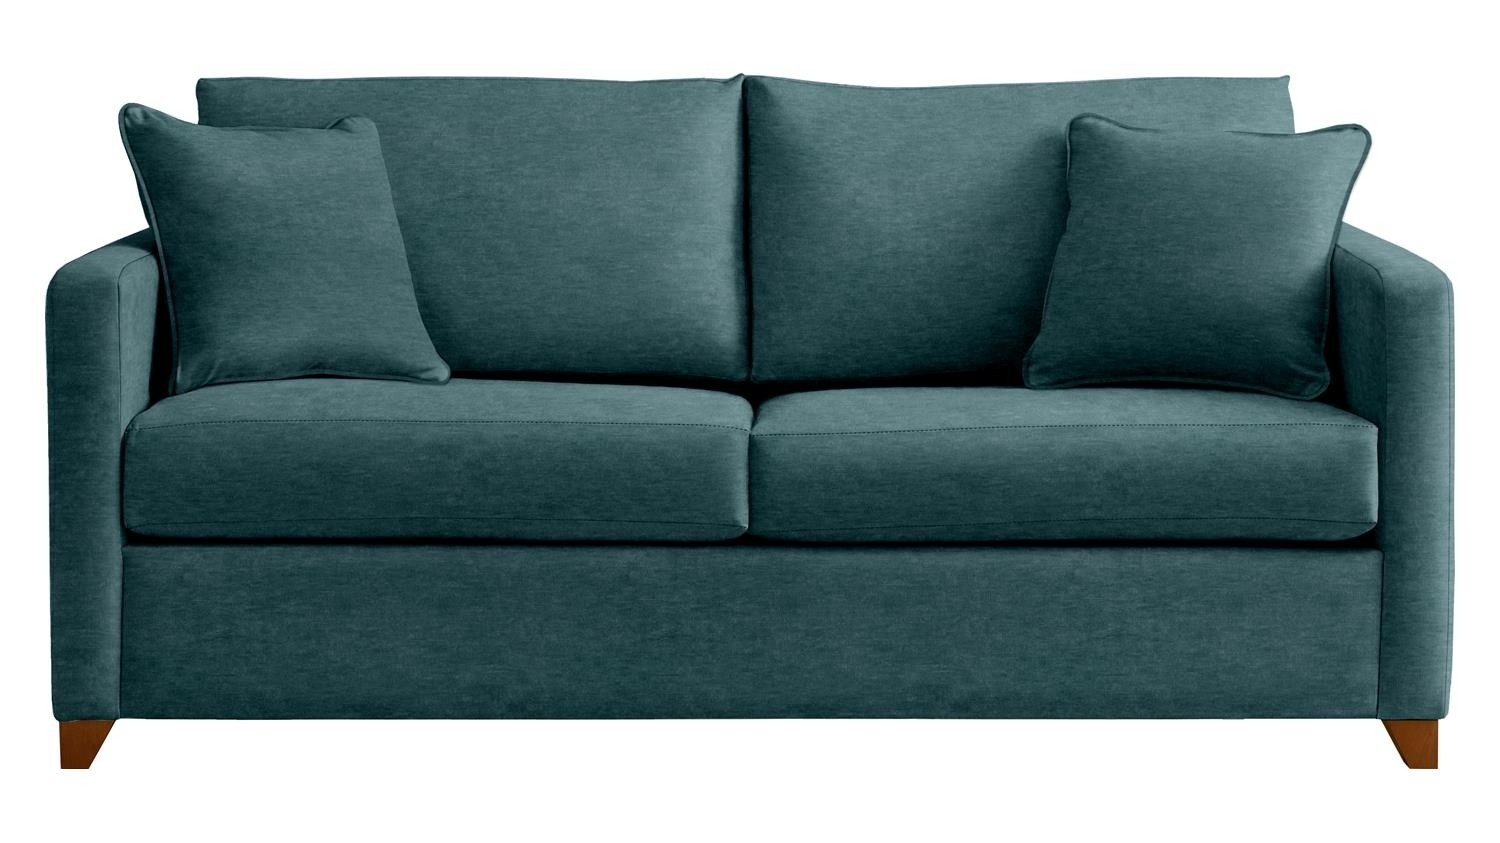 The Foxham 4 Seater Sofa Bed